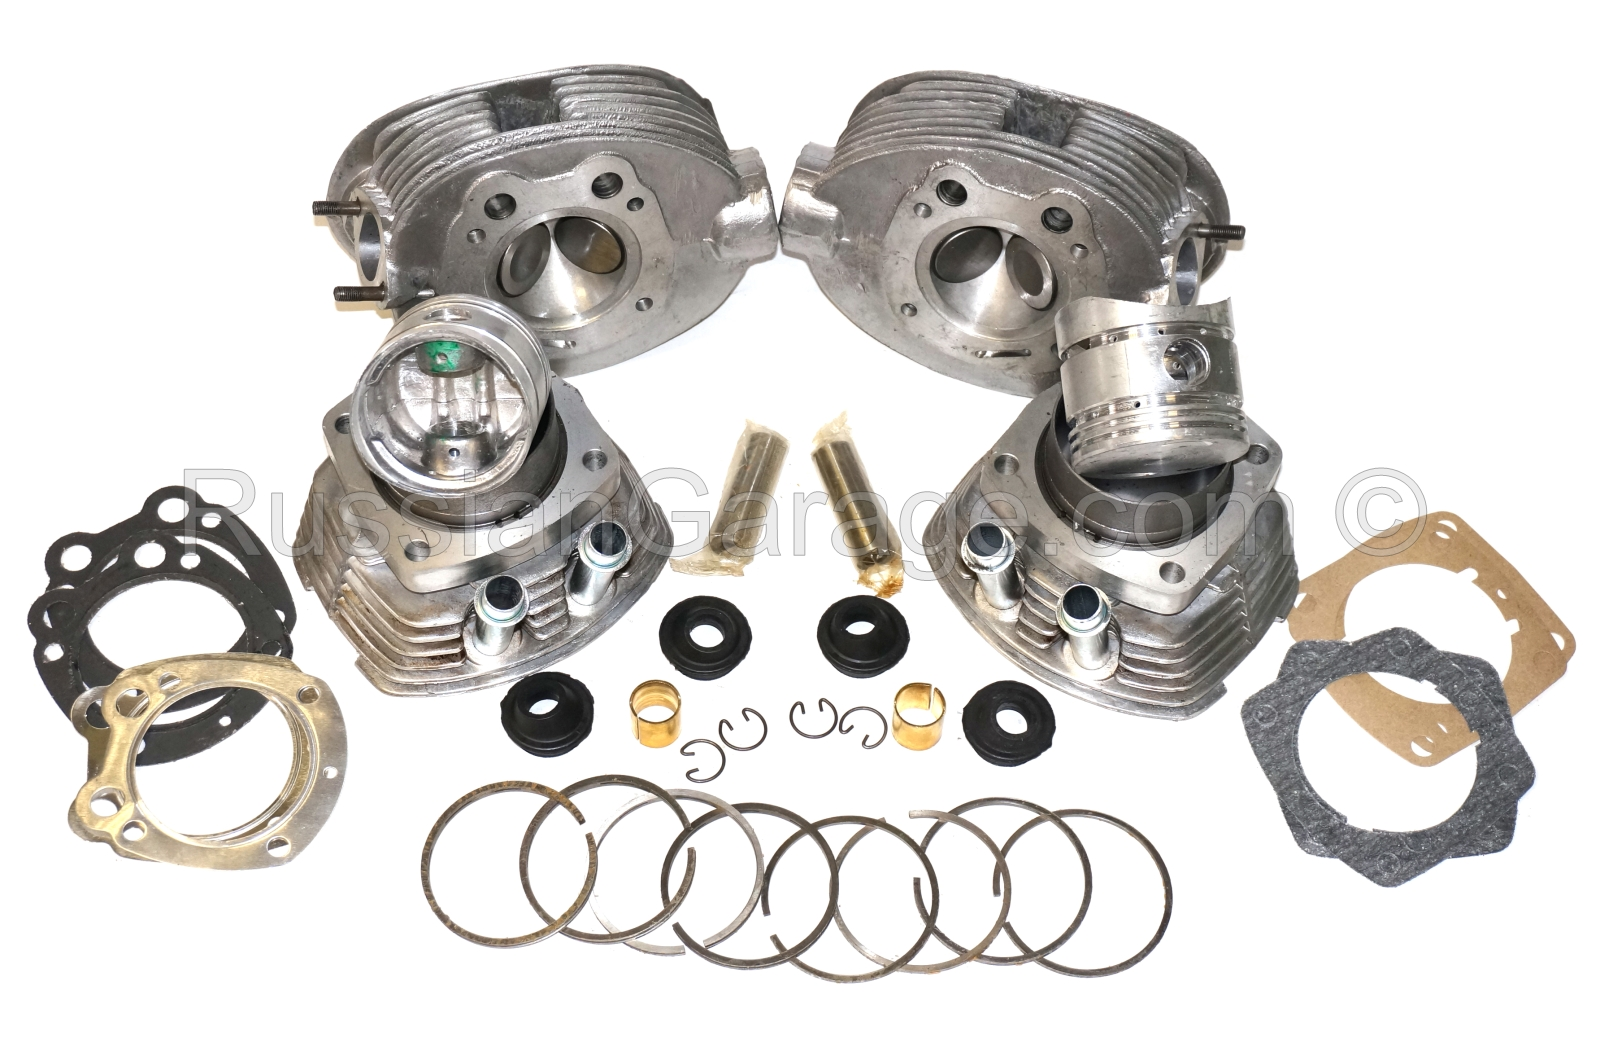 Cylinders pistons set and heads complete kit URAL ...